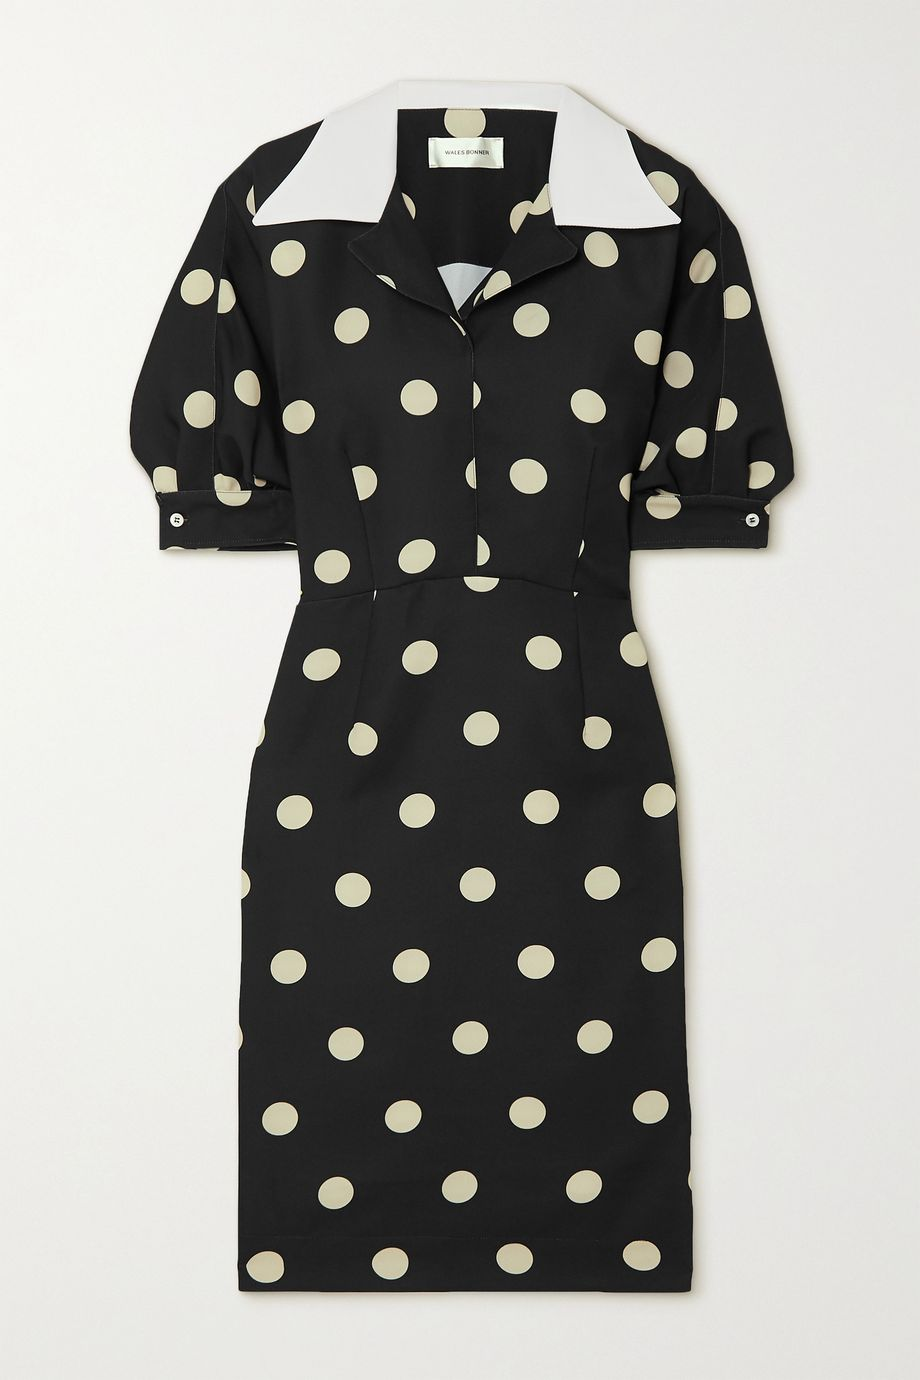 Wales Bonner Vilma polka-dot satin dress